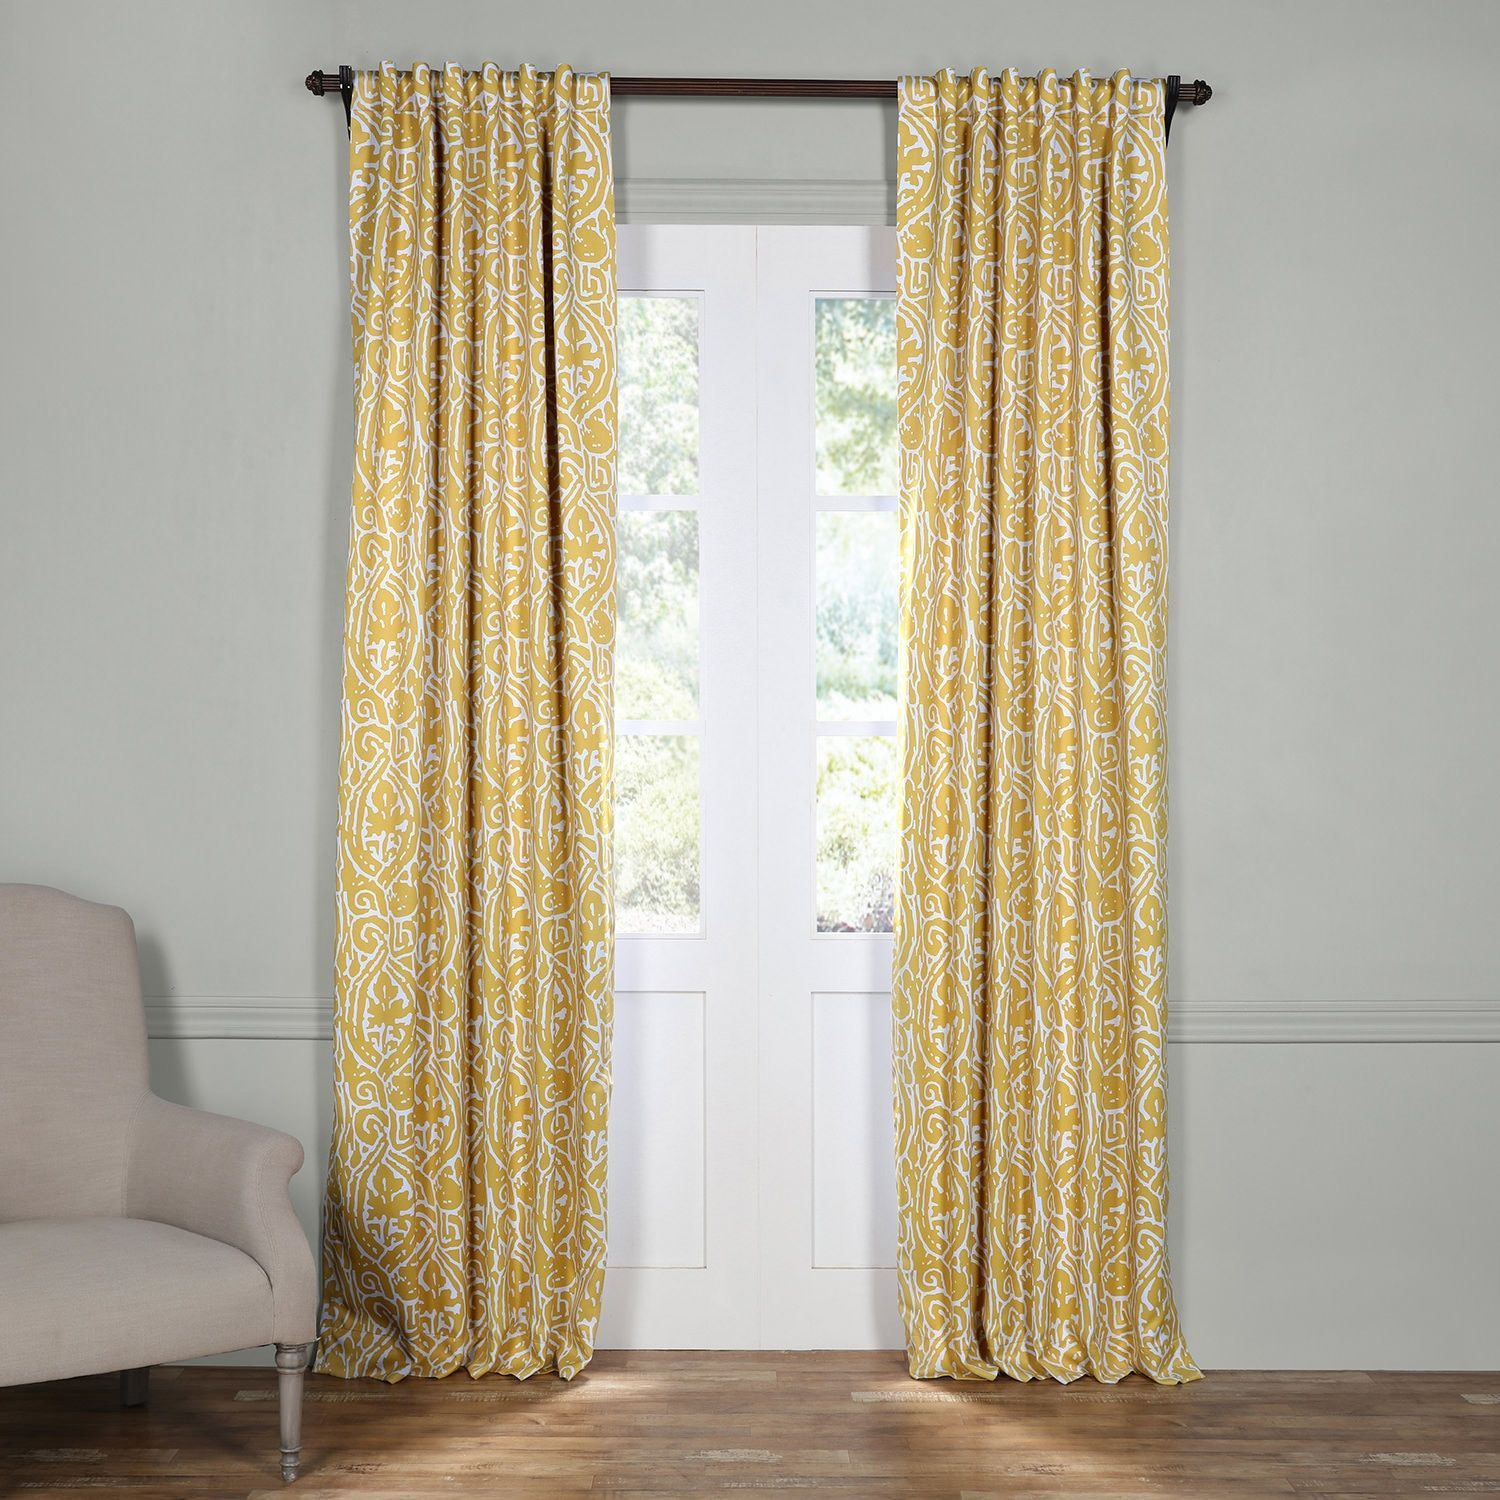 Bed bath and beyond window shades  exclusive fabrics yellow and grey inch wide abstract blackout